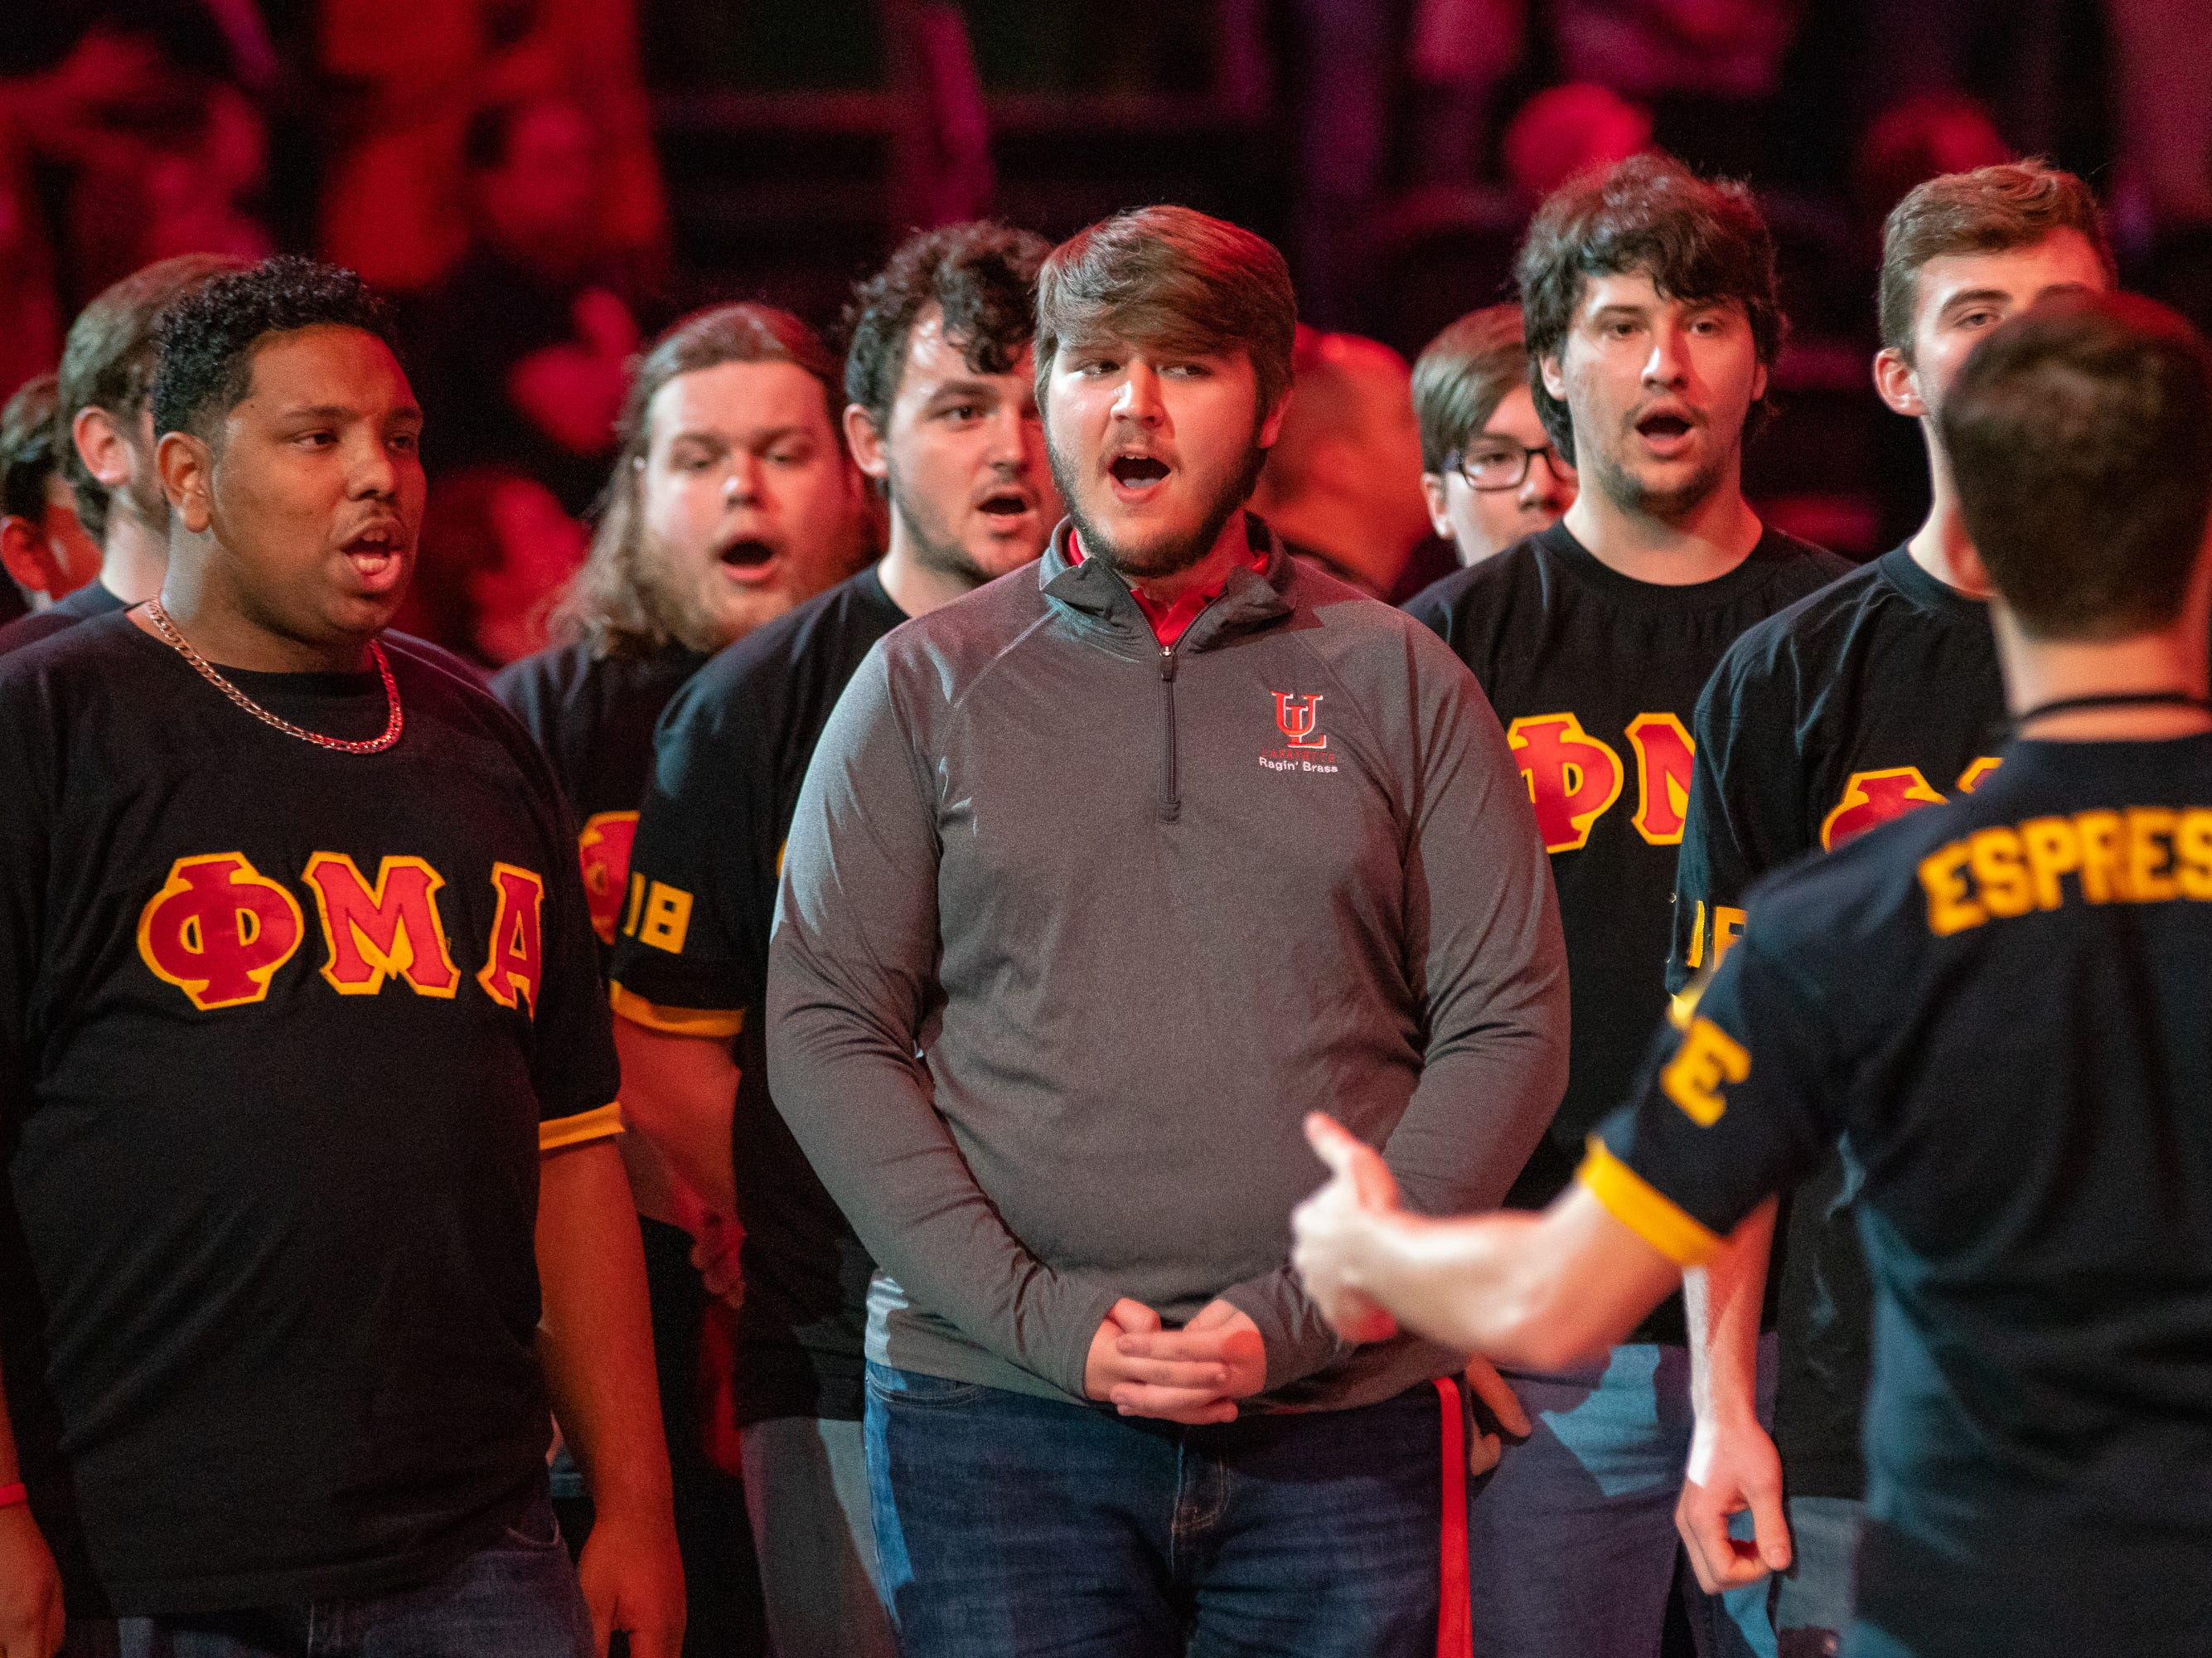 UL's Phi Mu Alpha performs before the game as the Ragin' Cajuns take on the Georgia Southern Eagles at the Cajundome on Feb. 6, 2019.